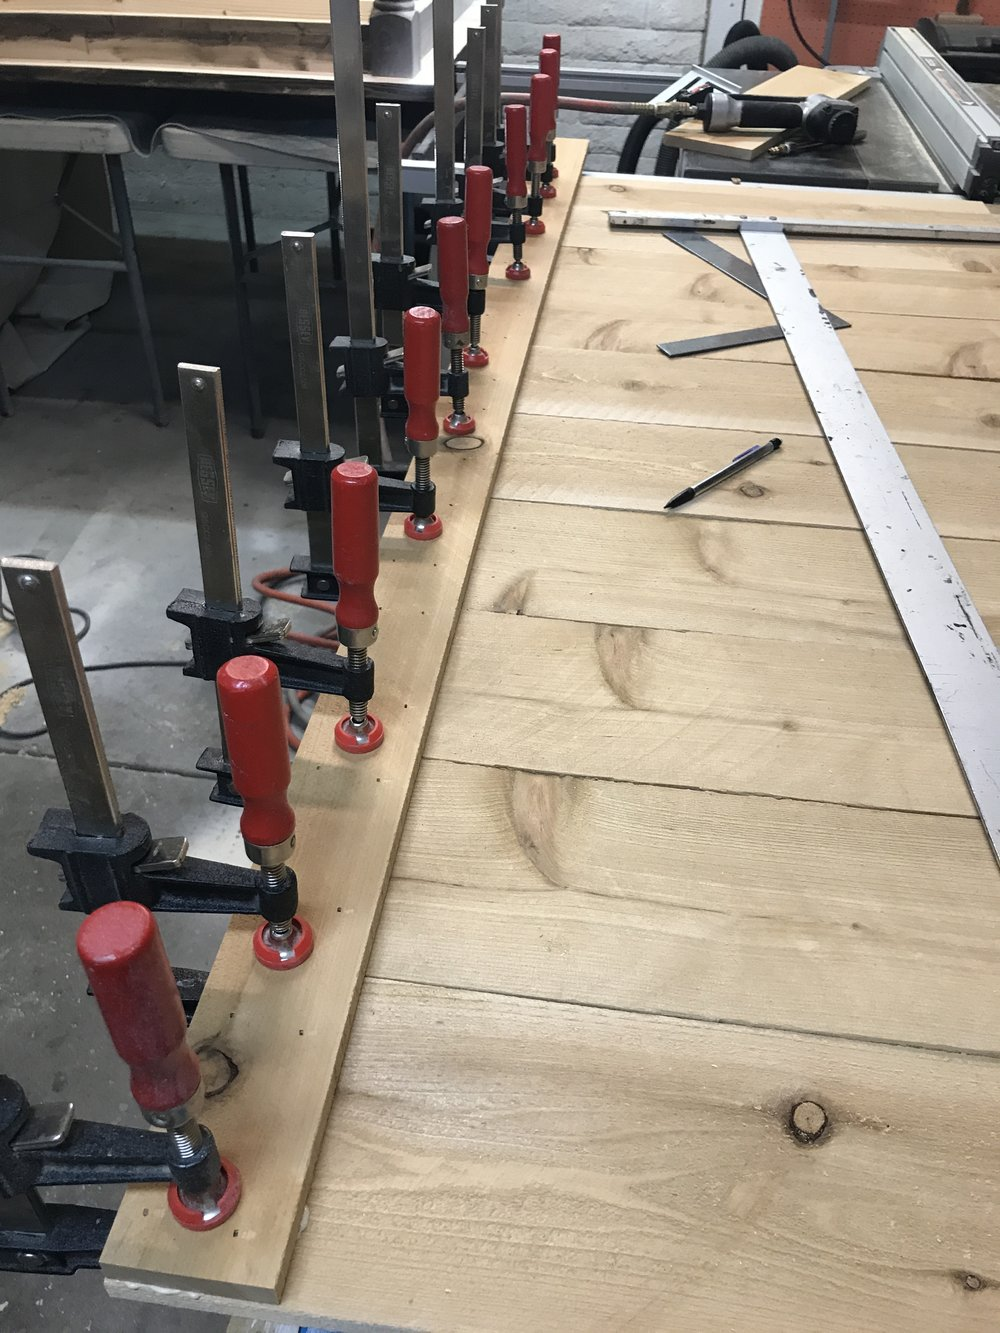 Rocking the Bessey clamps!